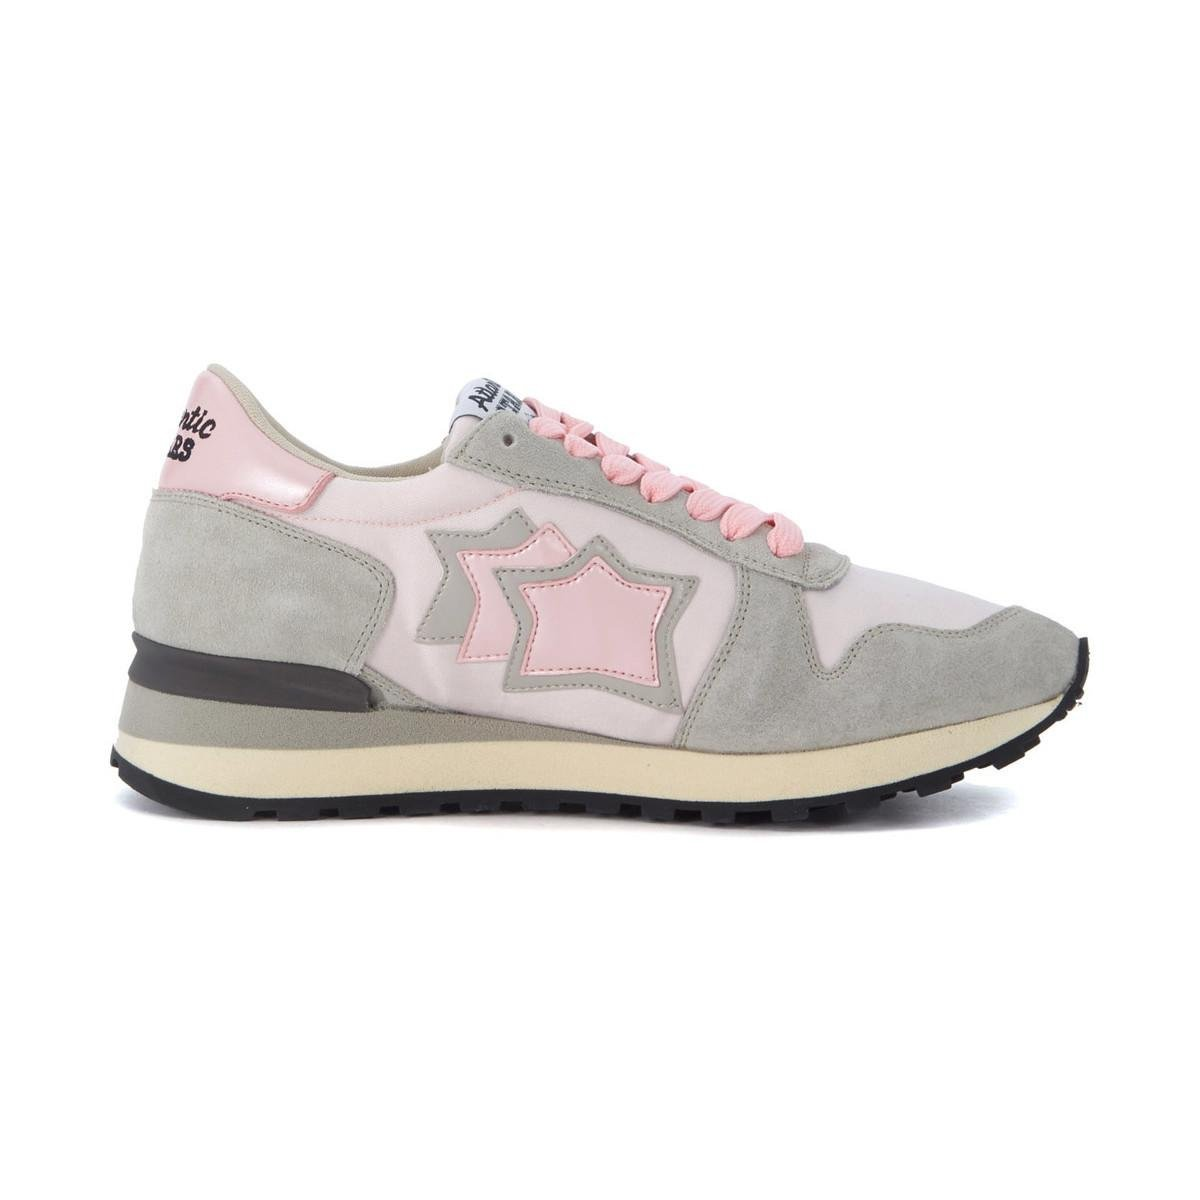 Sale Best Seller Atlantic Stars Alhena grey leather and pink nylon sneakers women's Shoes (Trainers) in In China For Sale nzSNNYassc